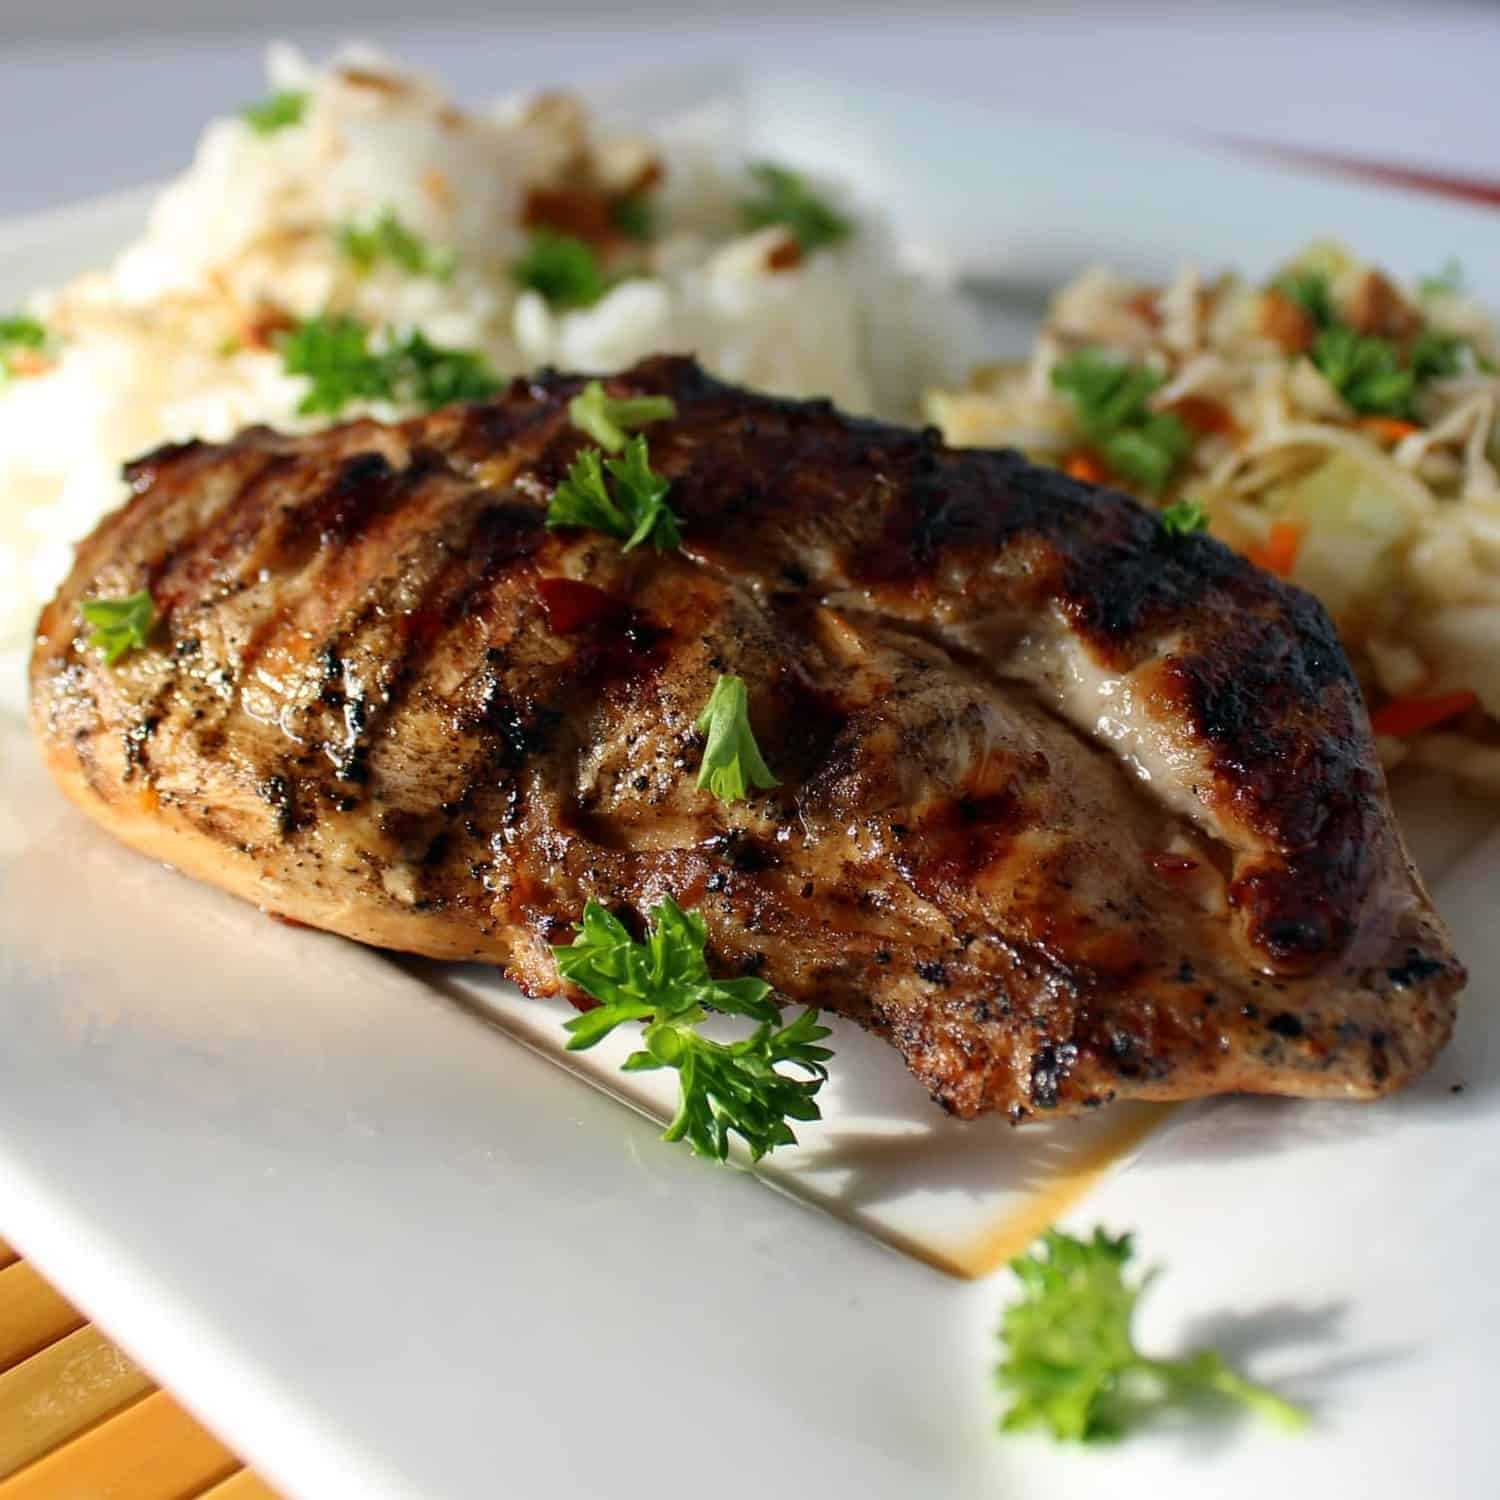 A grilled chicken breast on a white plate with coleslaw and rice in the background.